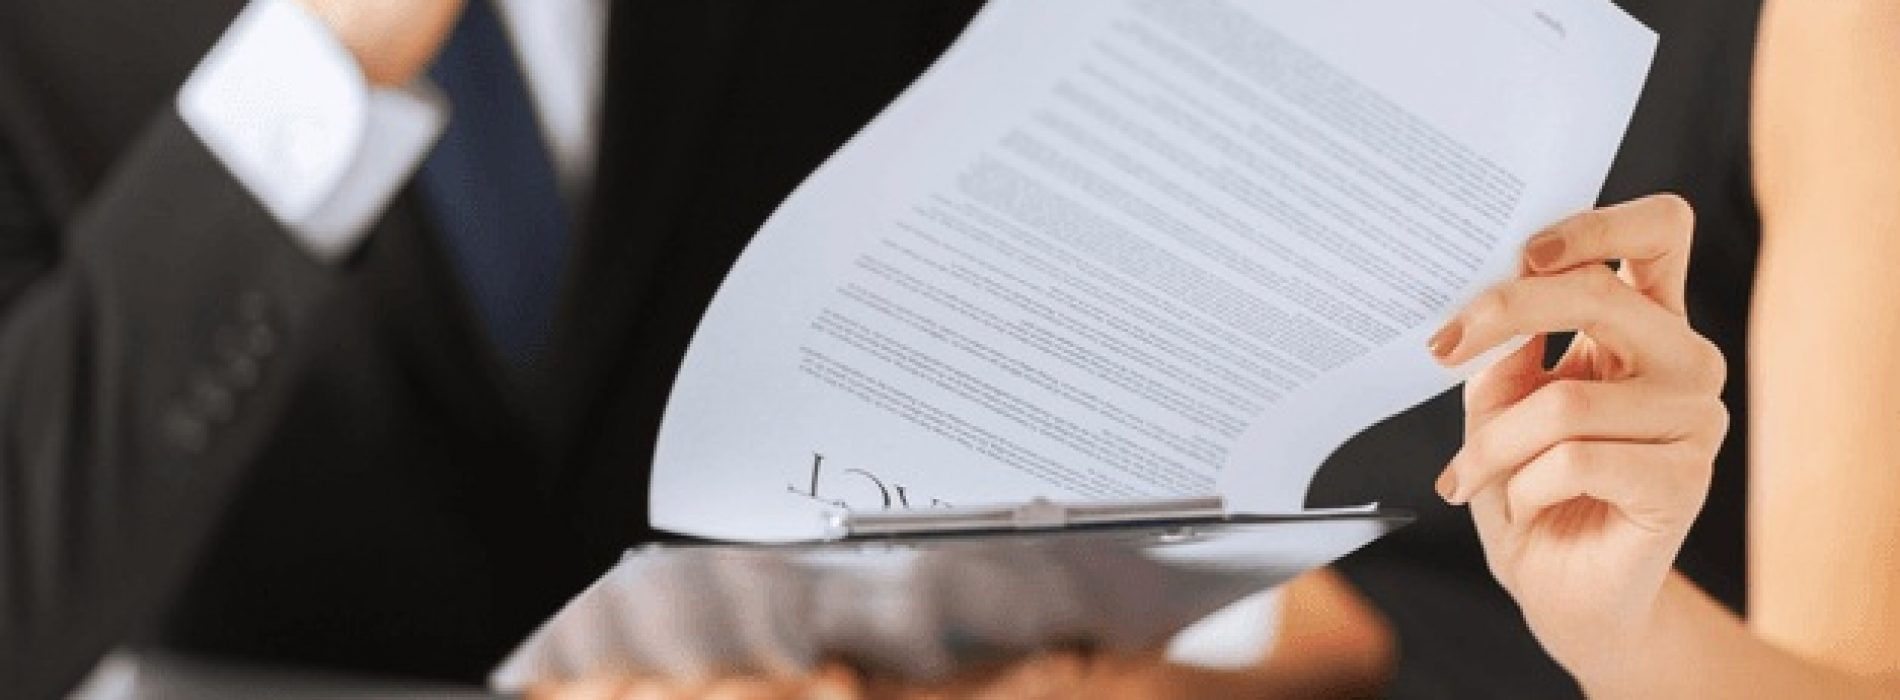 Working with a Skilled Disability Attorney to Appeal a New York Life Insurance Disability Claim Denial